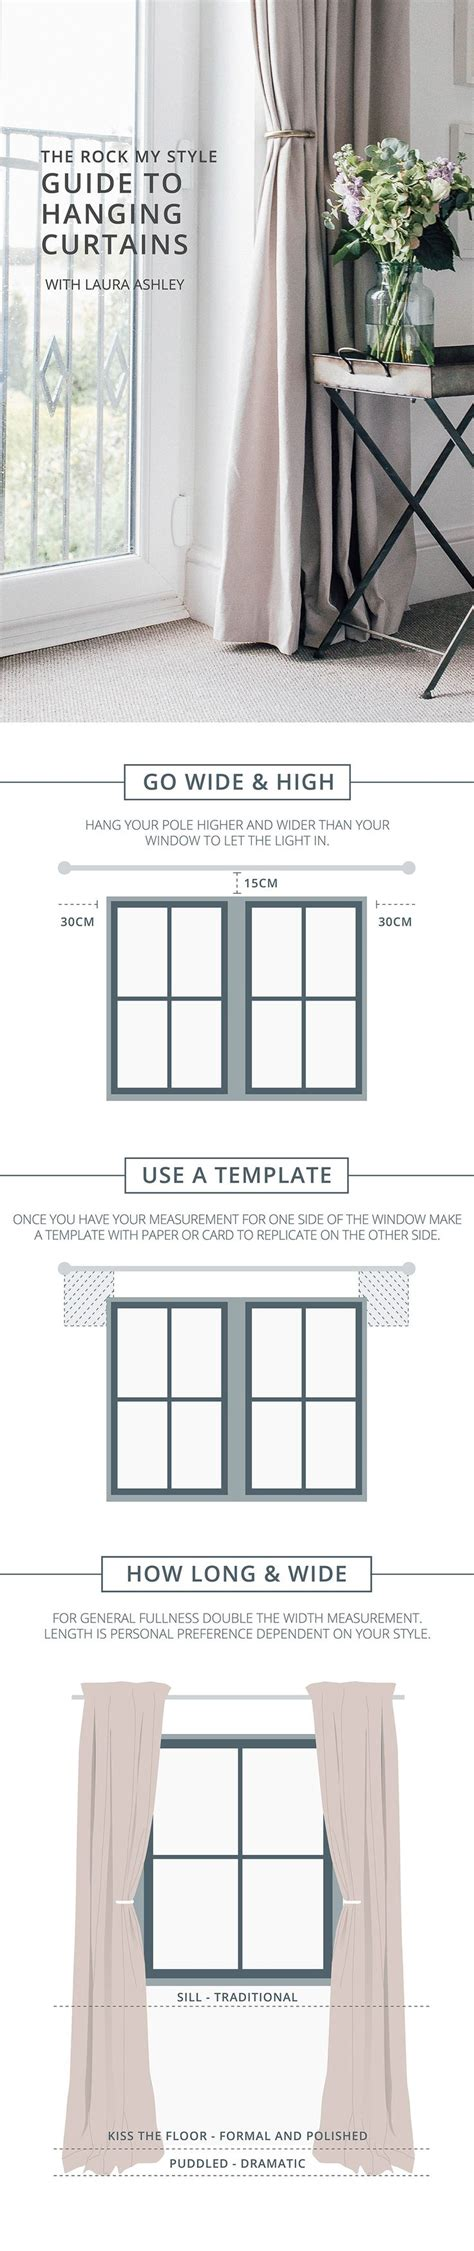 curtain hanging guide best 25 how to hang curtains ideas on pinterest hang